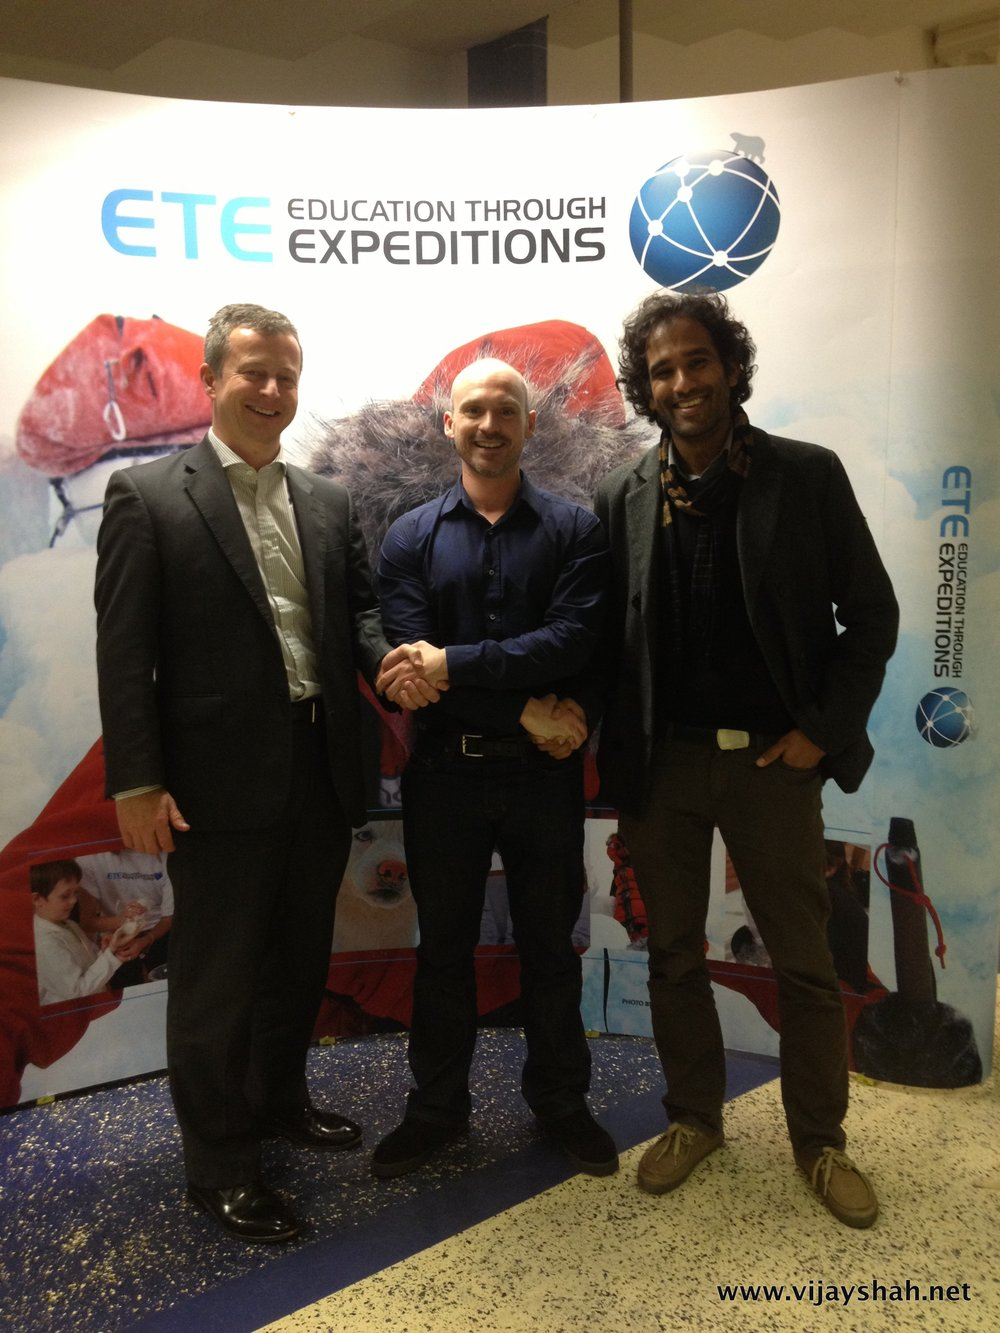 Duncan, Antony and Vijay at the civic send off in Plymouth.